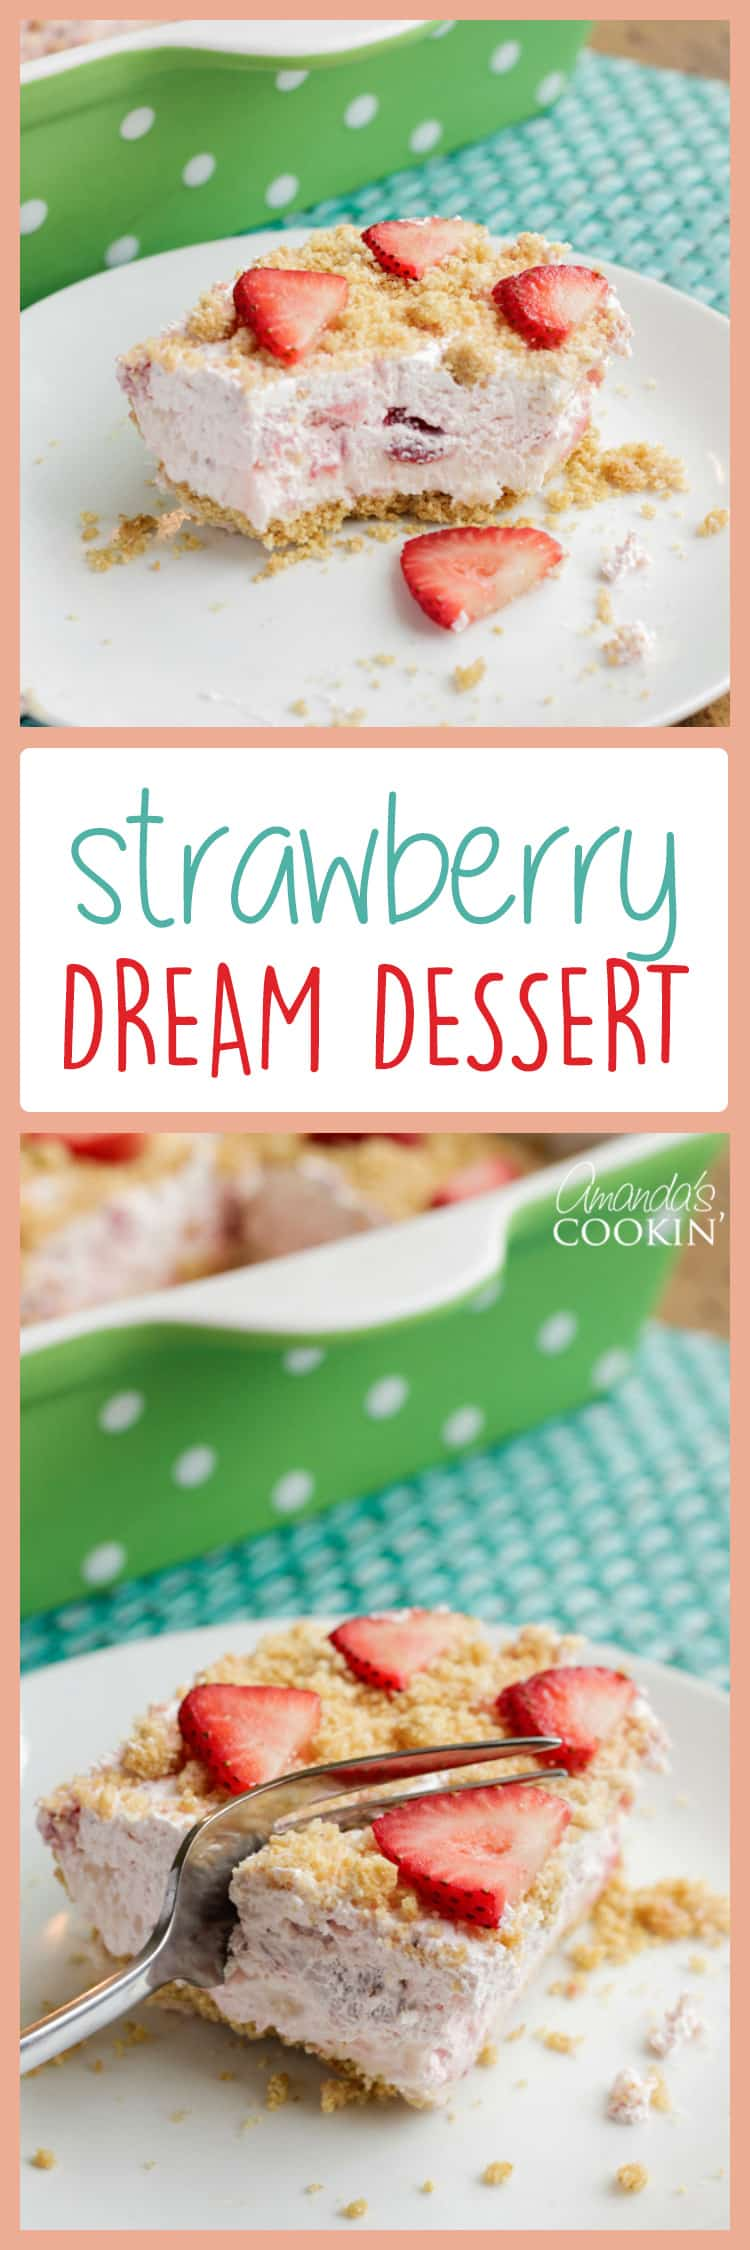 strawberry dream dessert